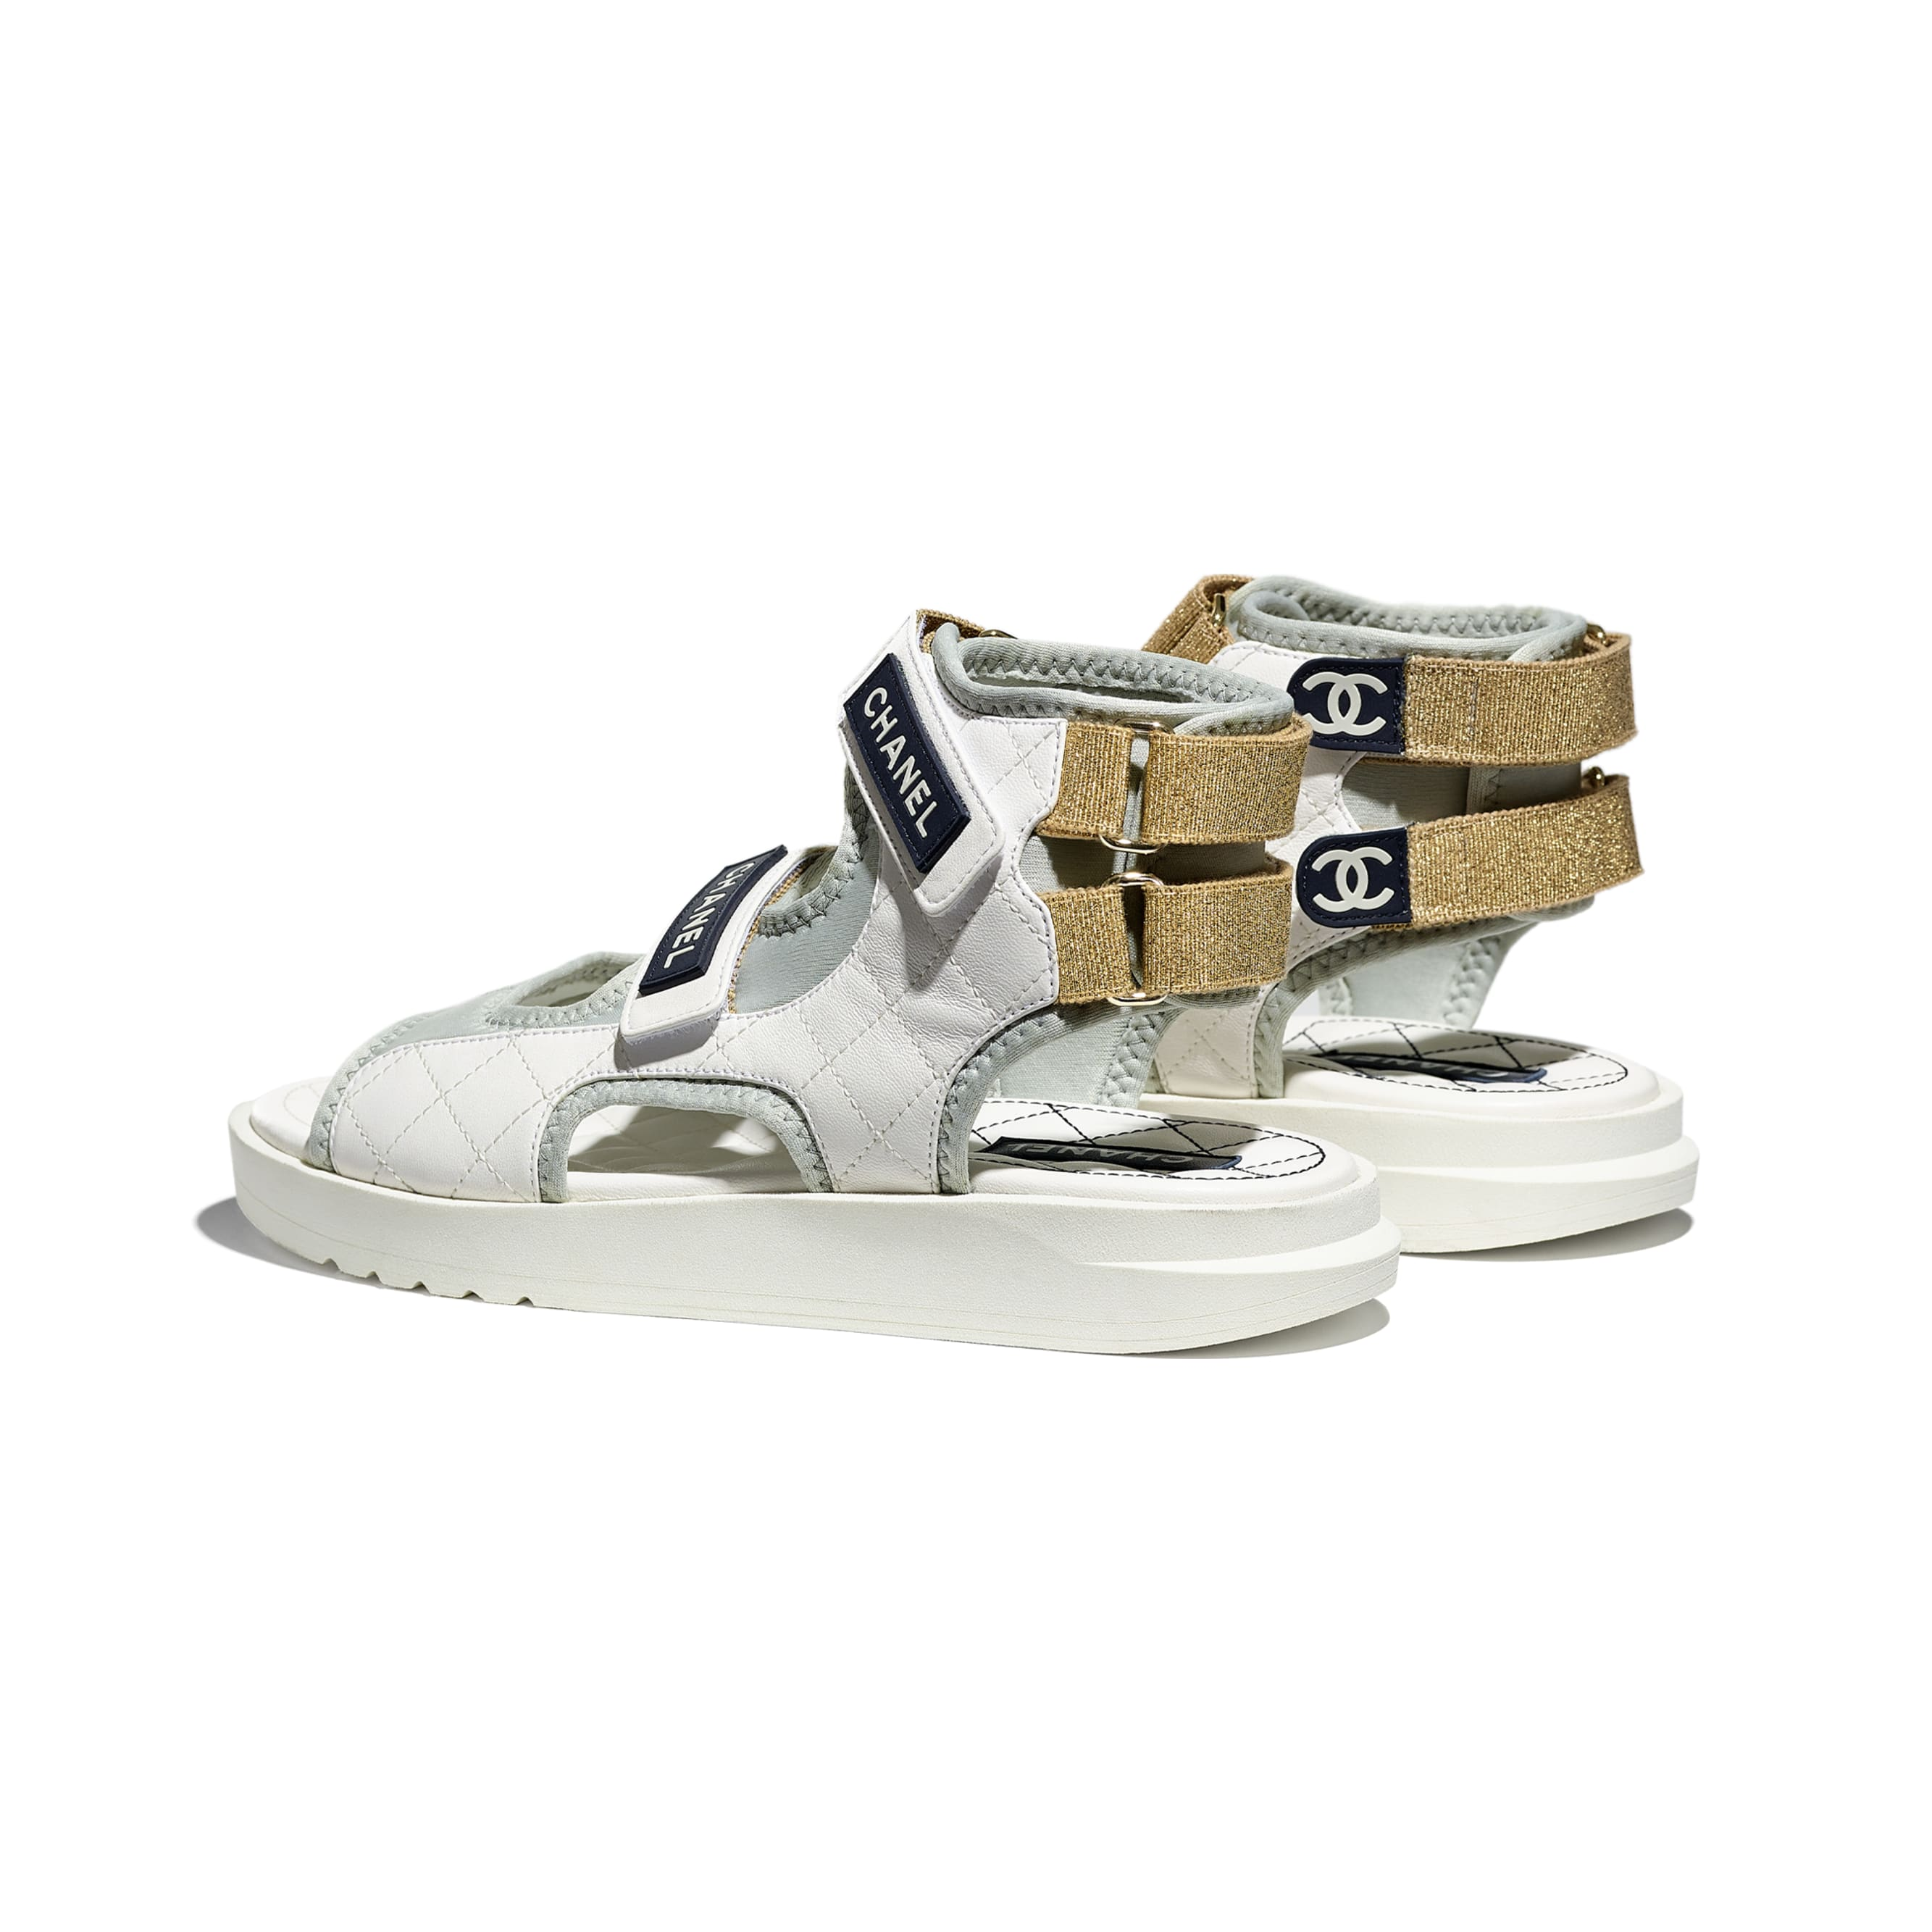 Sandals - White, Light Grey & Navy Blue - Goatskin, Fabric & TPU - CHANEL - Other view - see standard sized version